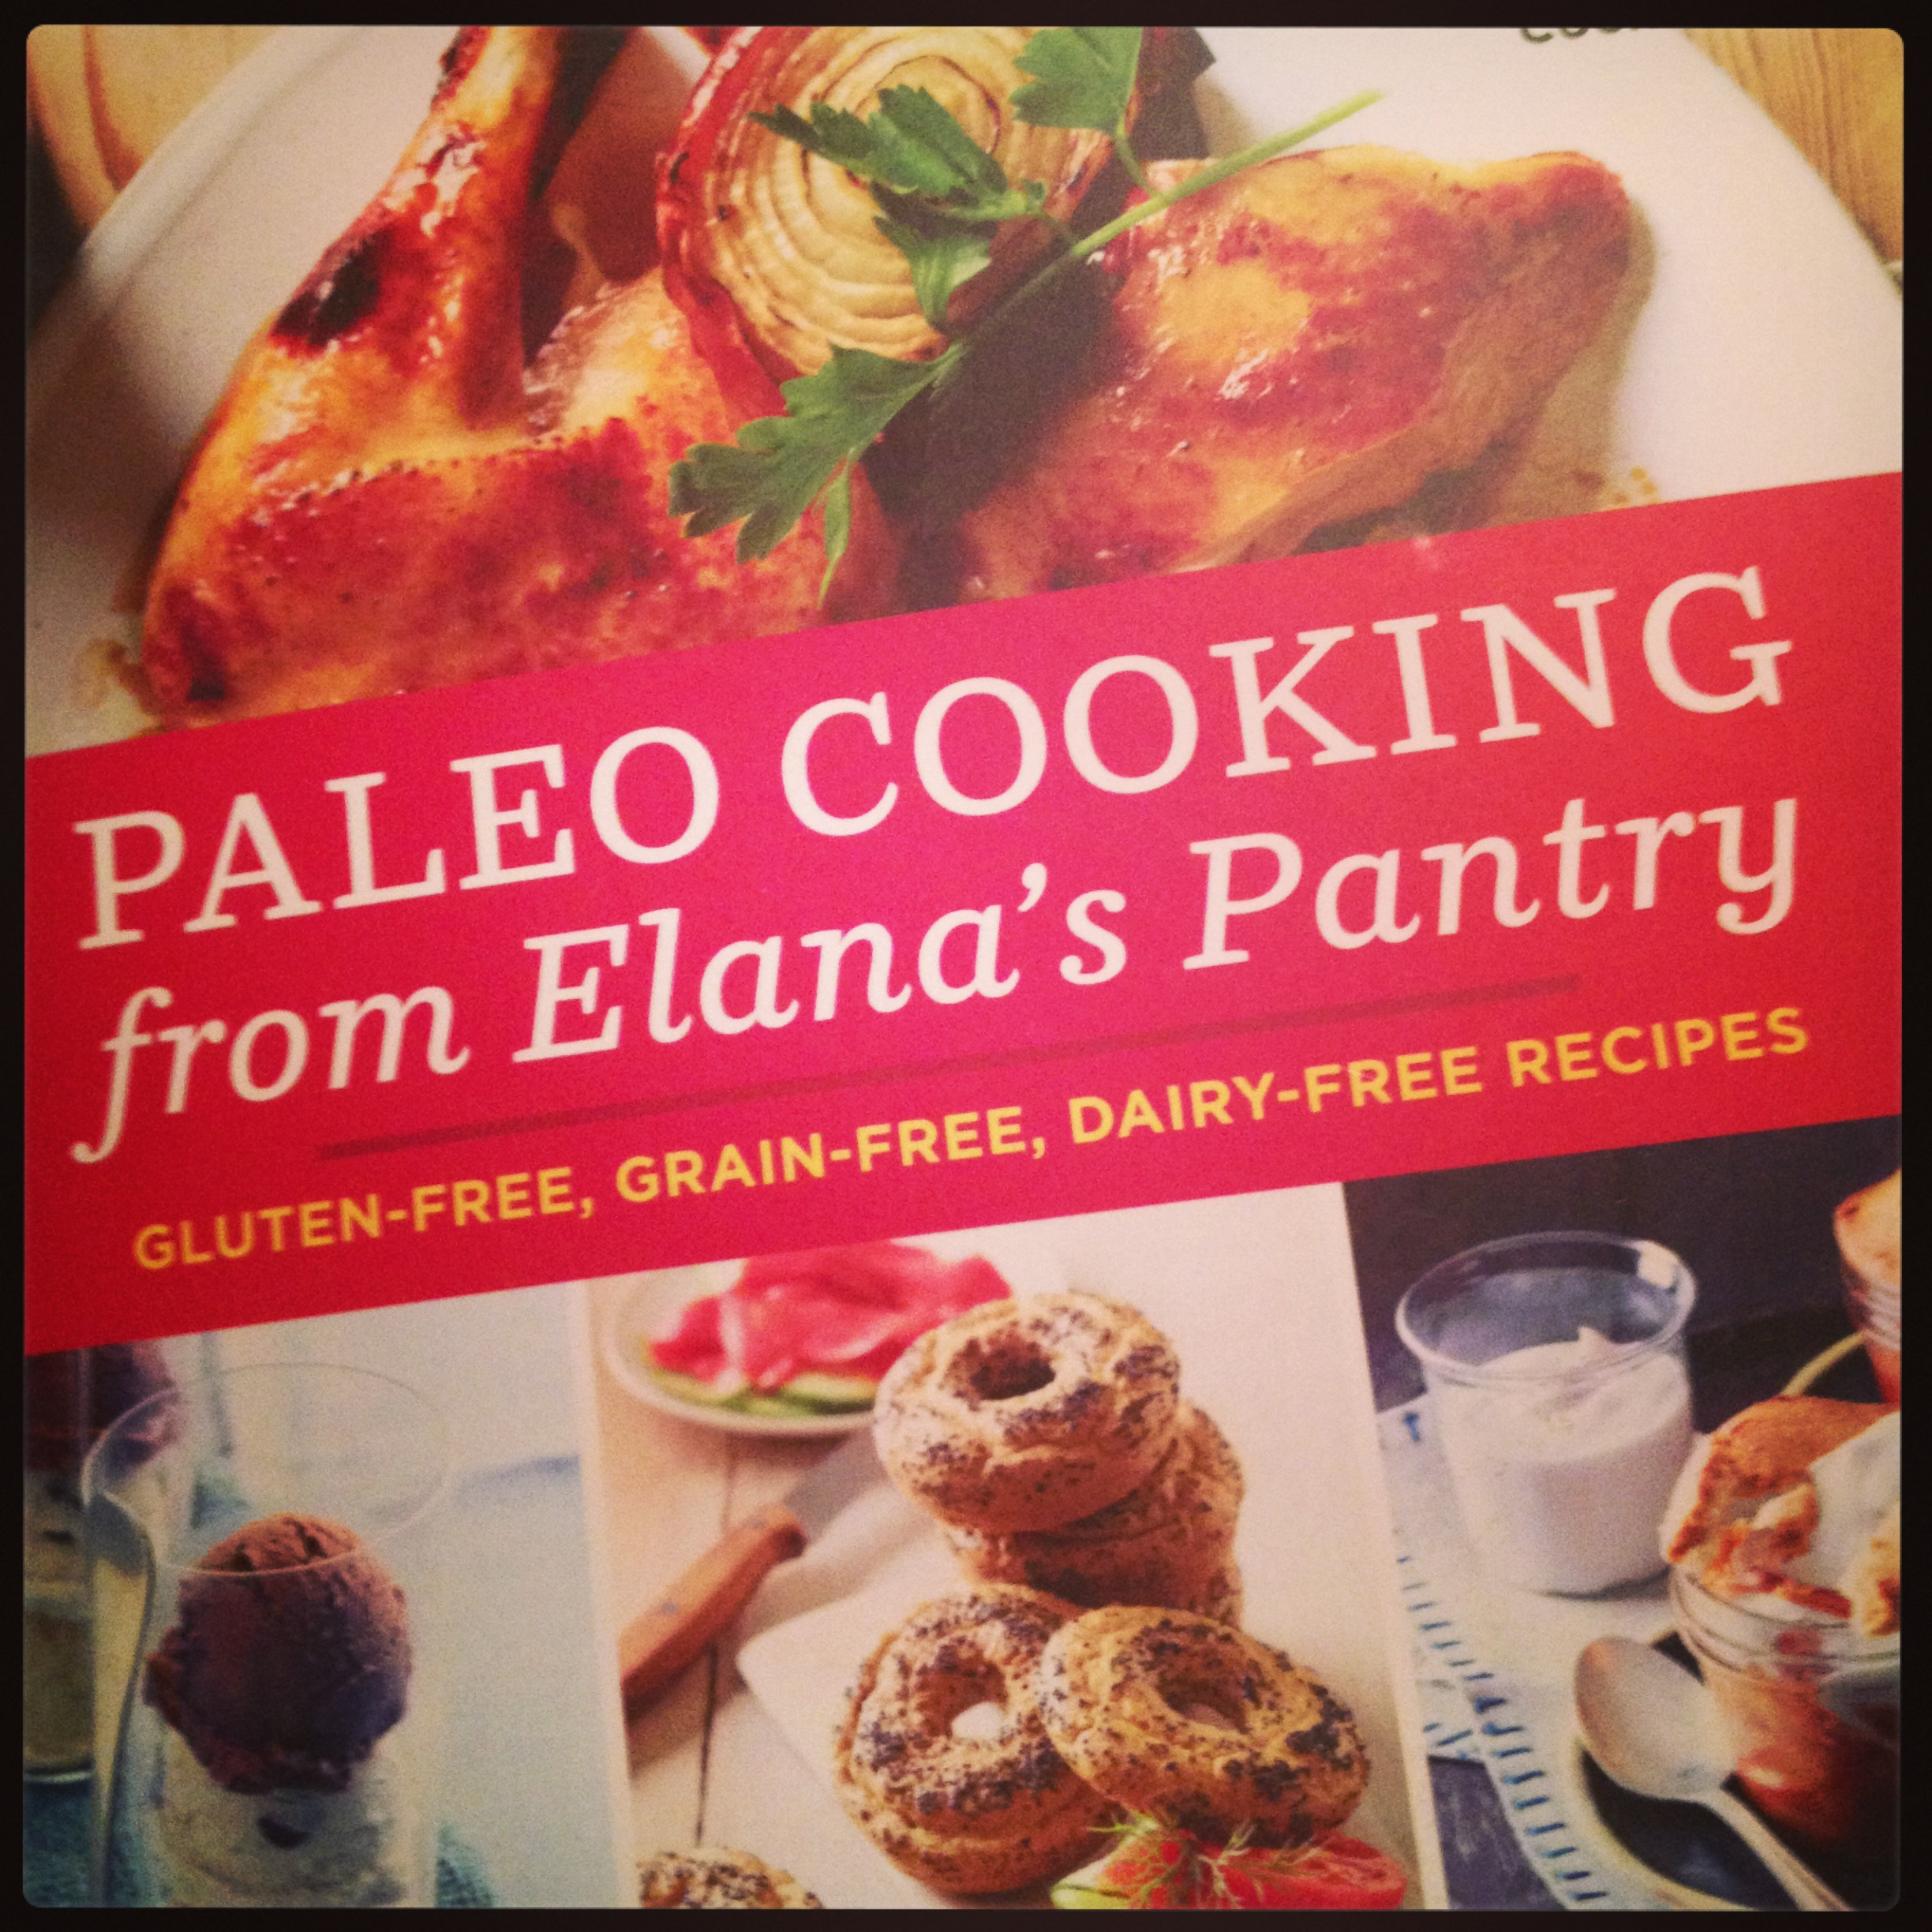 paleo cooking elana's pantry review